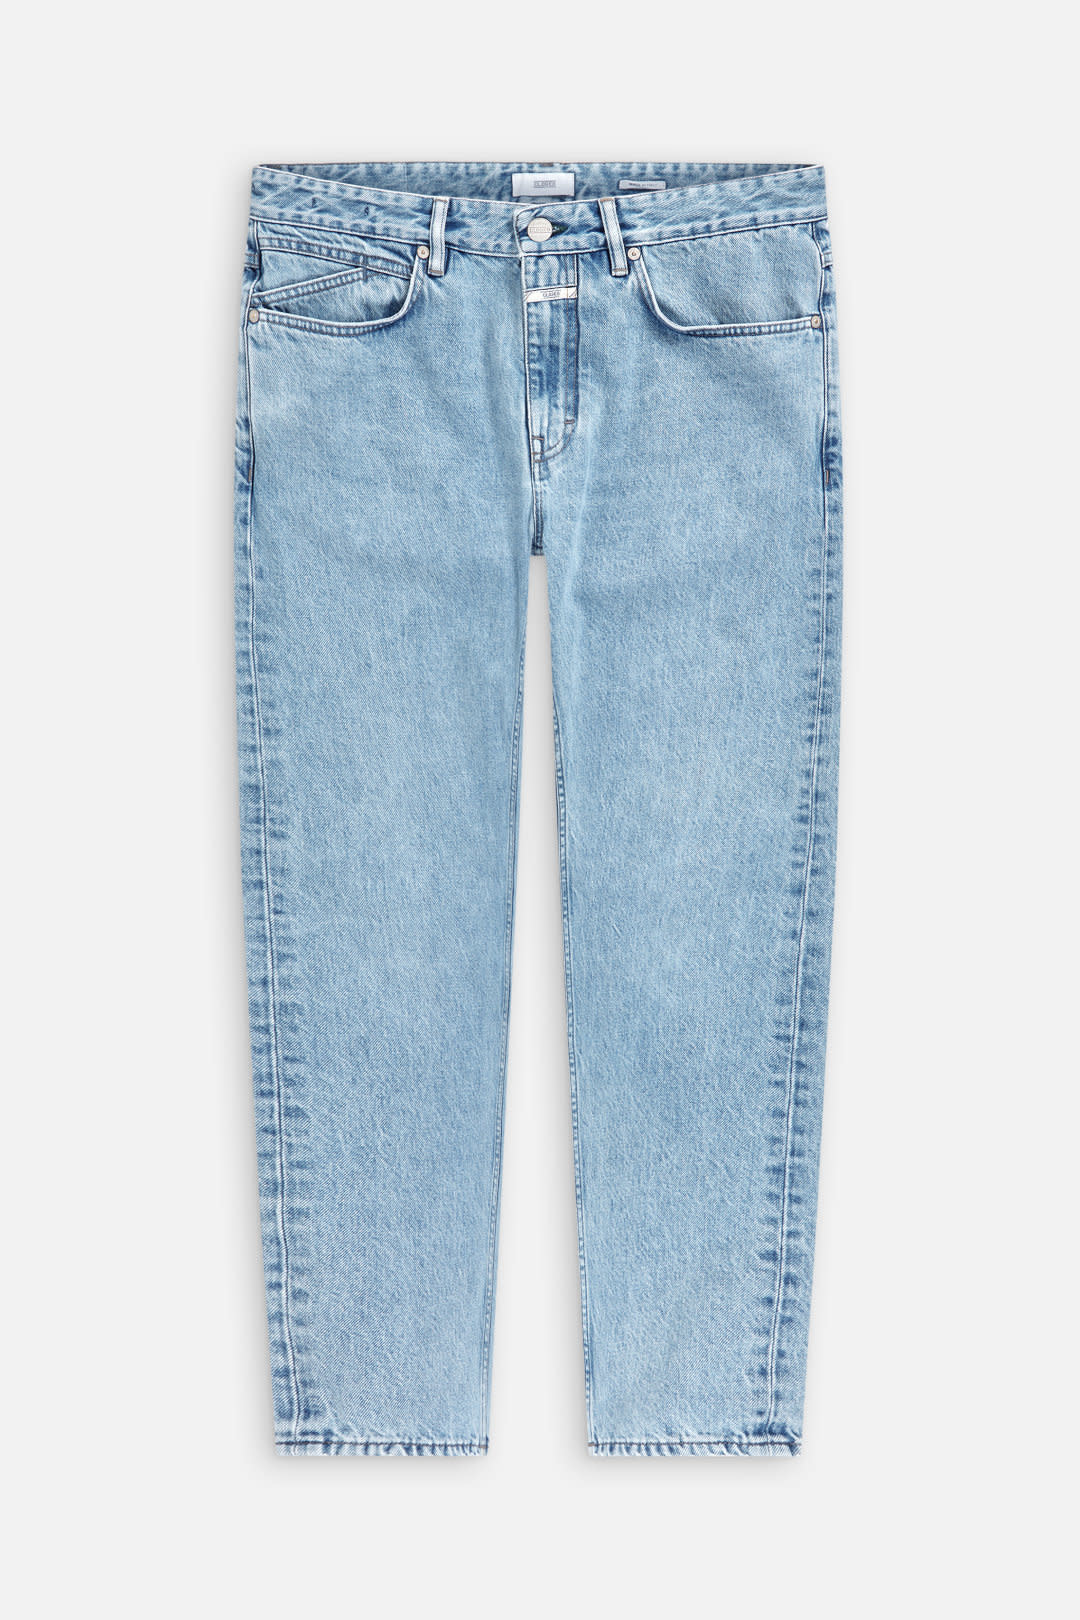 cooper tapered Jeans LBL-2